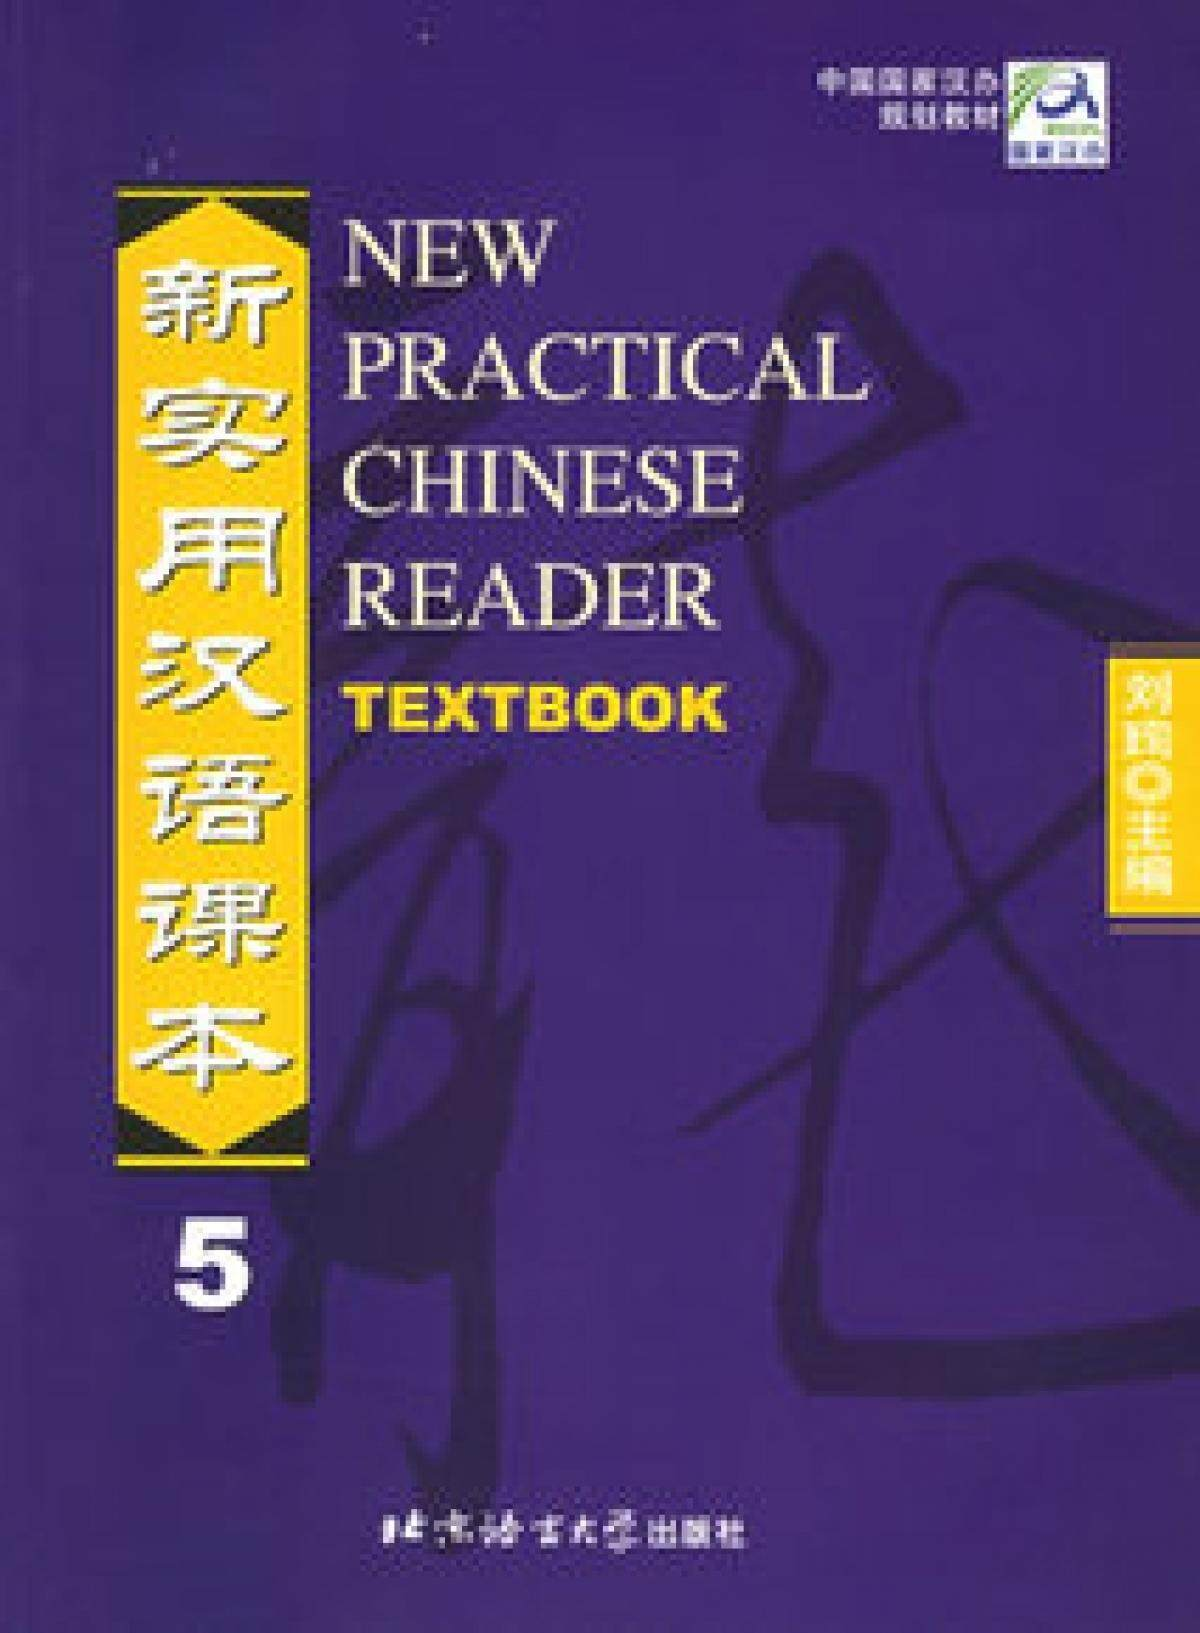 Chinese Book for Mandarin Language Learning (Advanced): New Practical Chinese Reader Textbook 5 新实用汉语课本 5